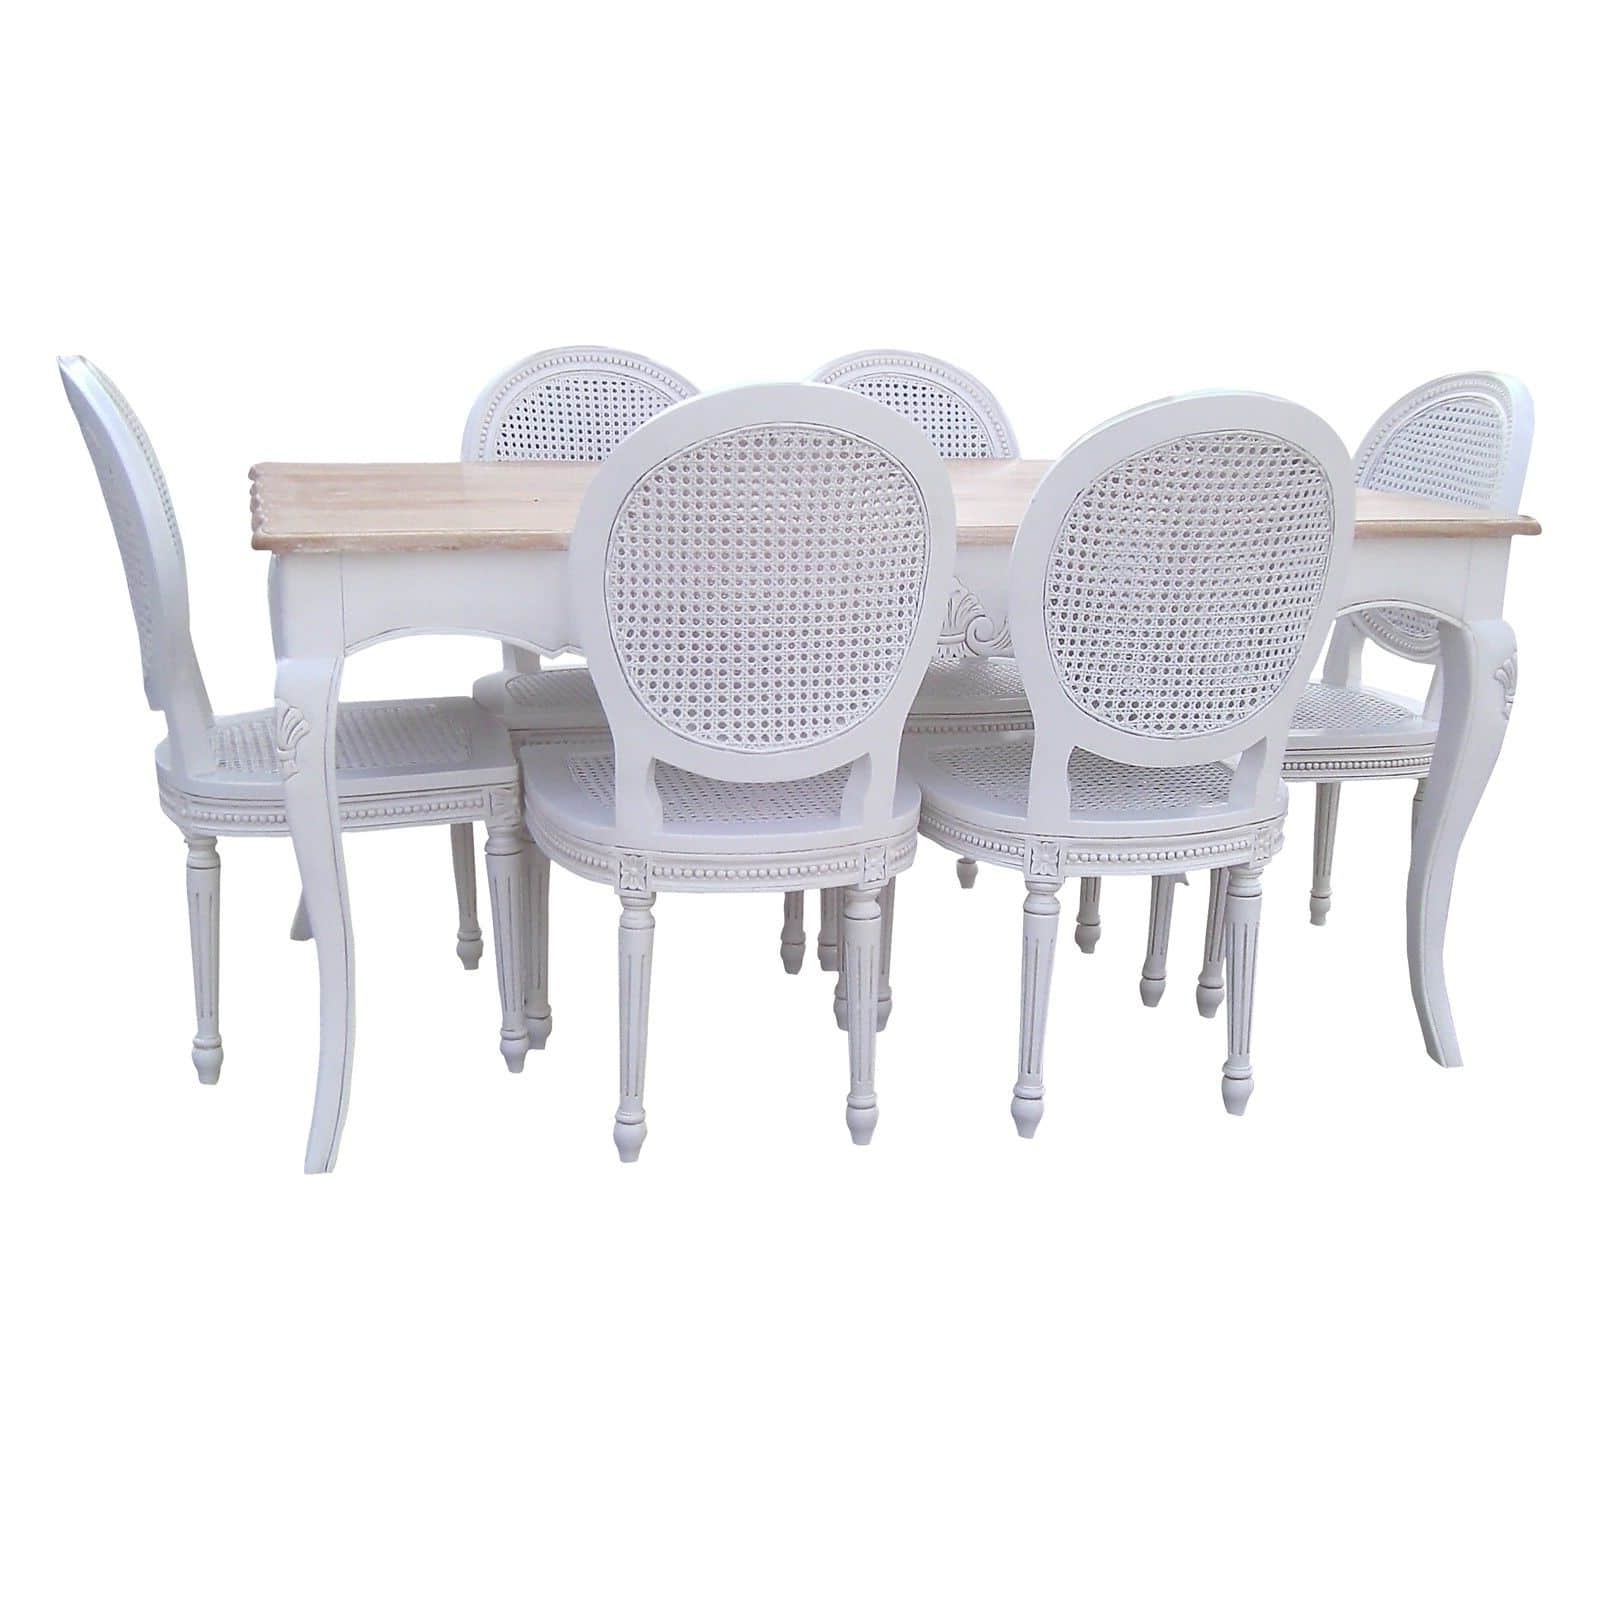 French Chateau White Mahogany Dining Table Set With 6 Chairs Inside Recent White Dining Tables And 6 Chairs (View 10 of 25)